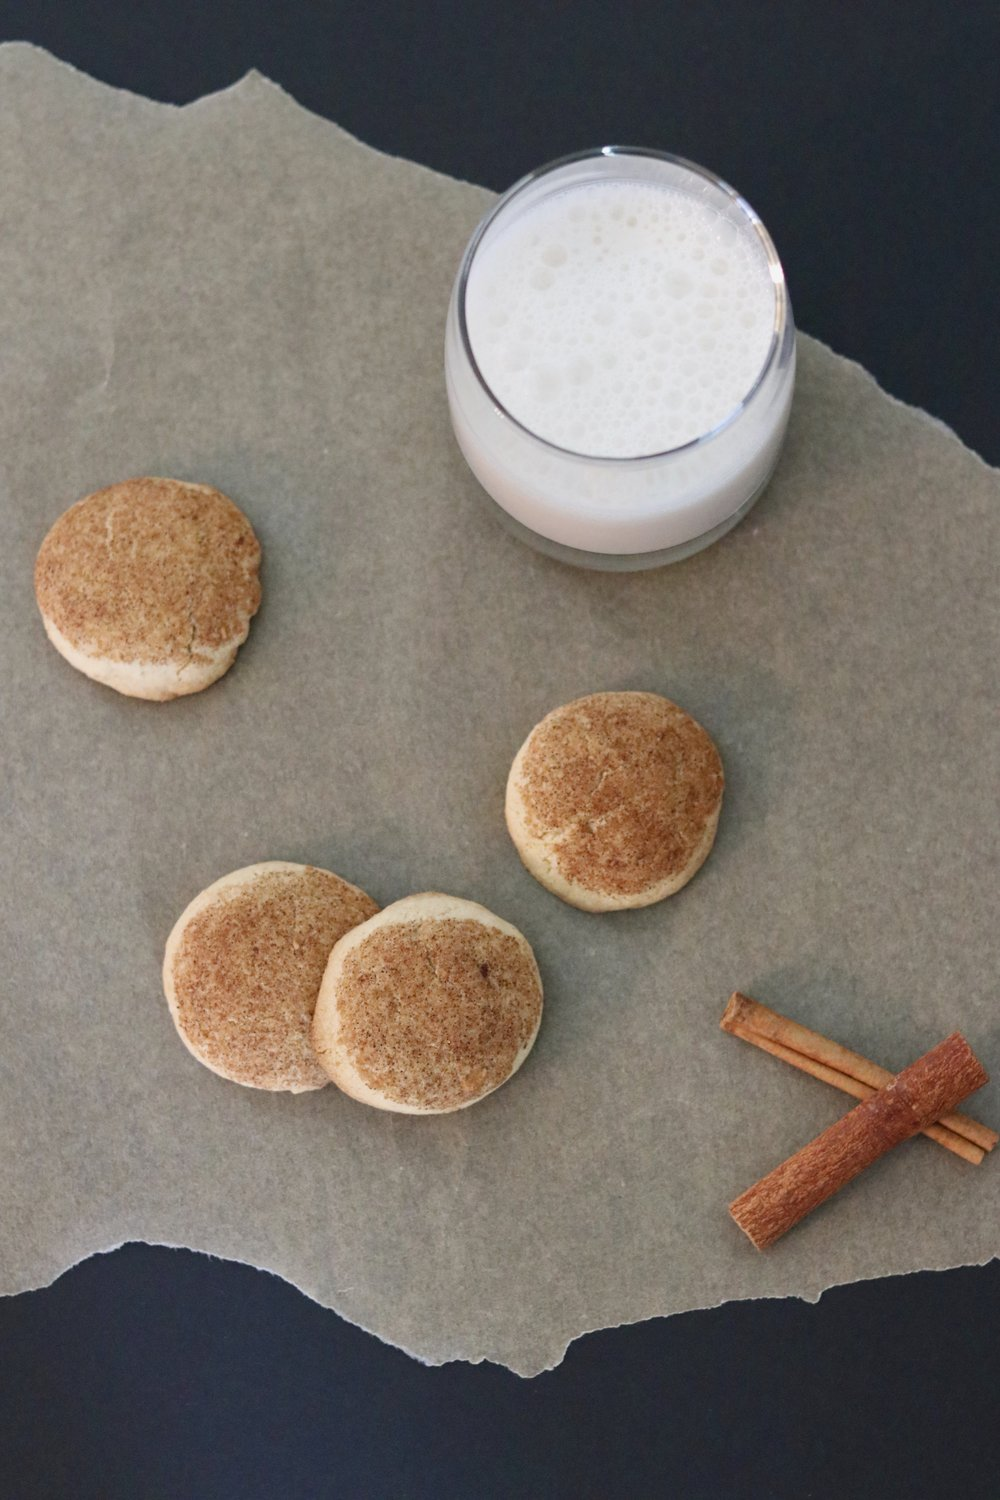 Grandma's Snickerdoodles I'd Eat That Food